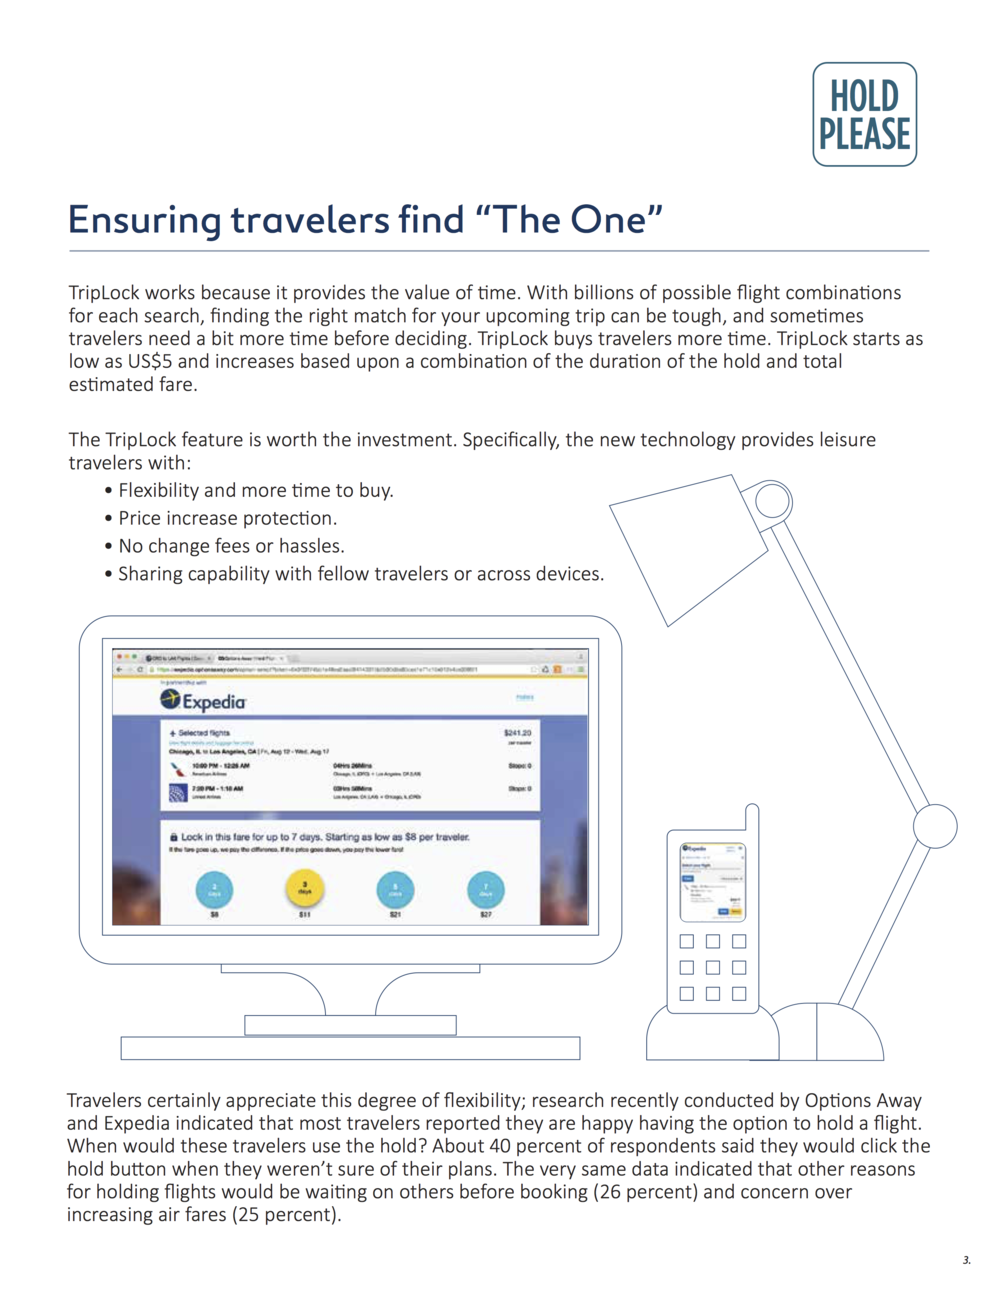 Options Away Expedia Case Study 3.png